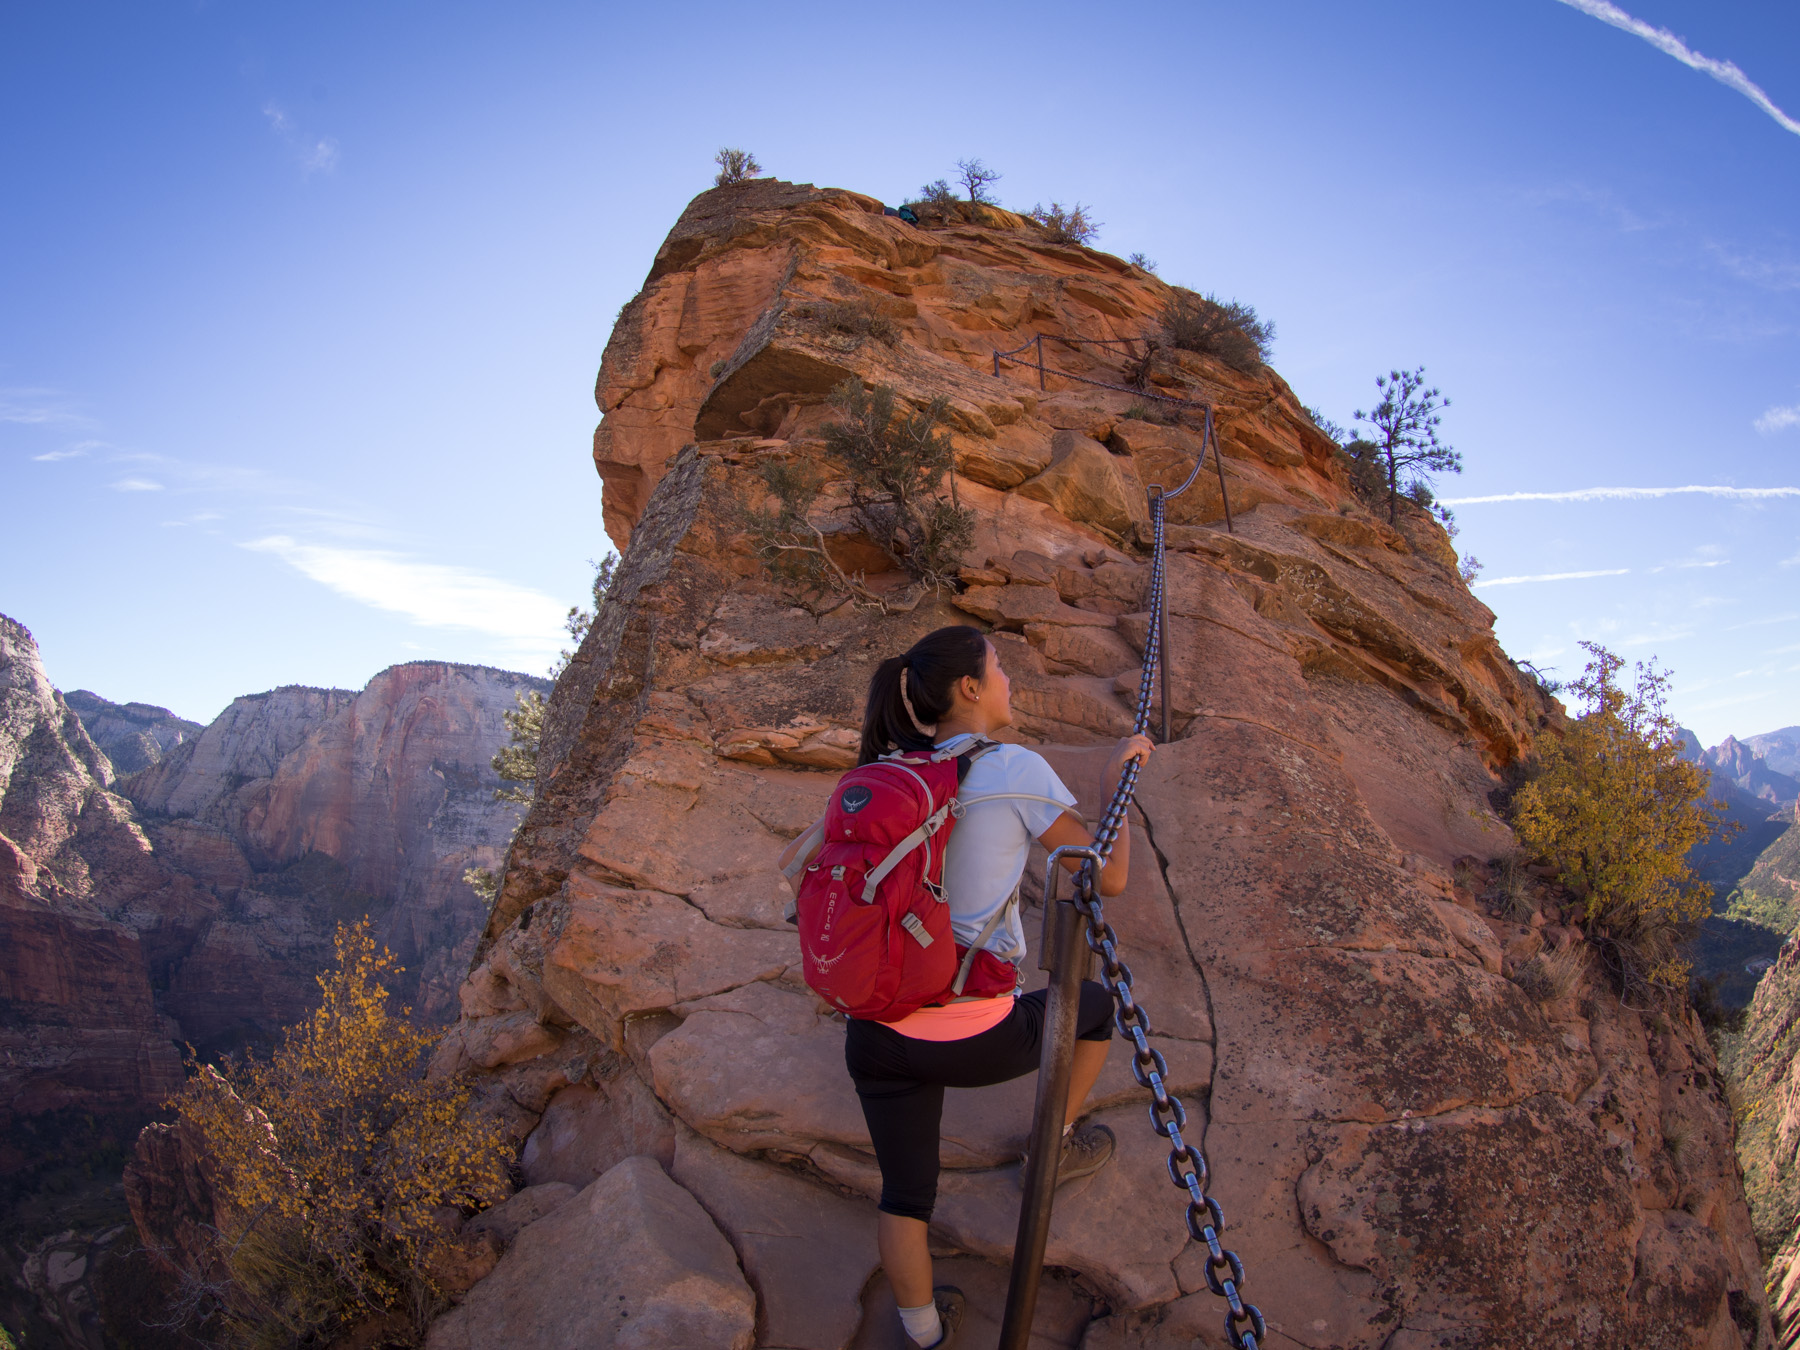 You can get an idea of what the trail is like , this photo really shows the the winding chains leading up the rock